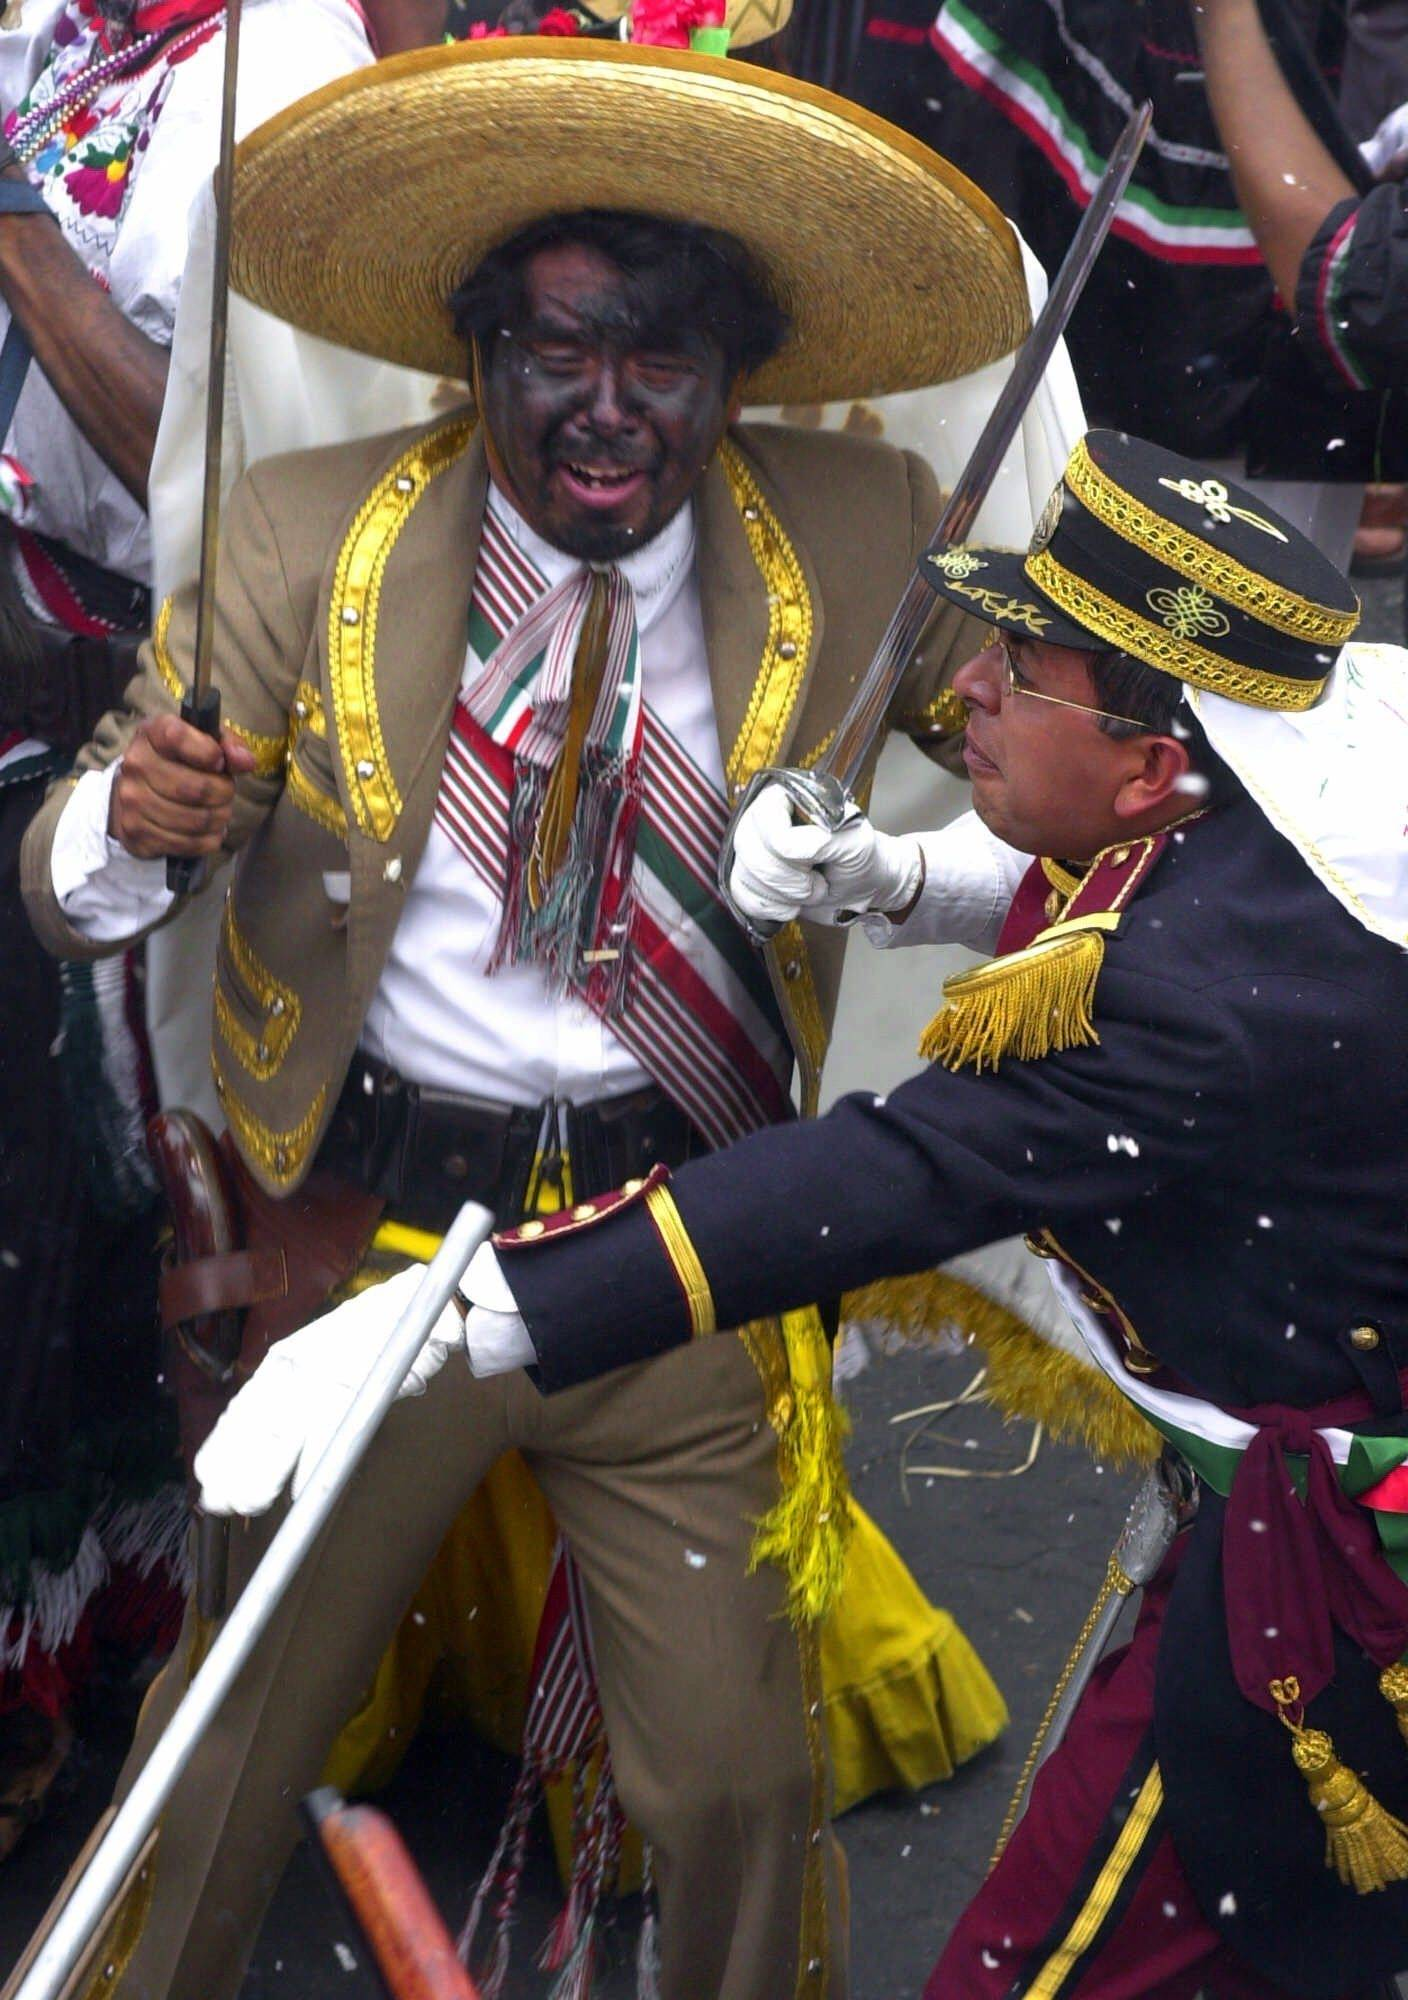 Penon de los Banos residents celebrate Cinco de Mayo with a reenactment of the 1862 battle between the French and the Zacapuaxtlas Indians Saturday, May 5, 2001, in Mexico City.